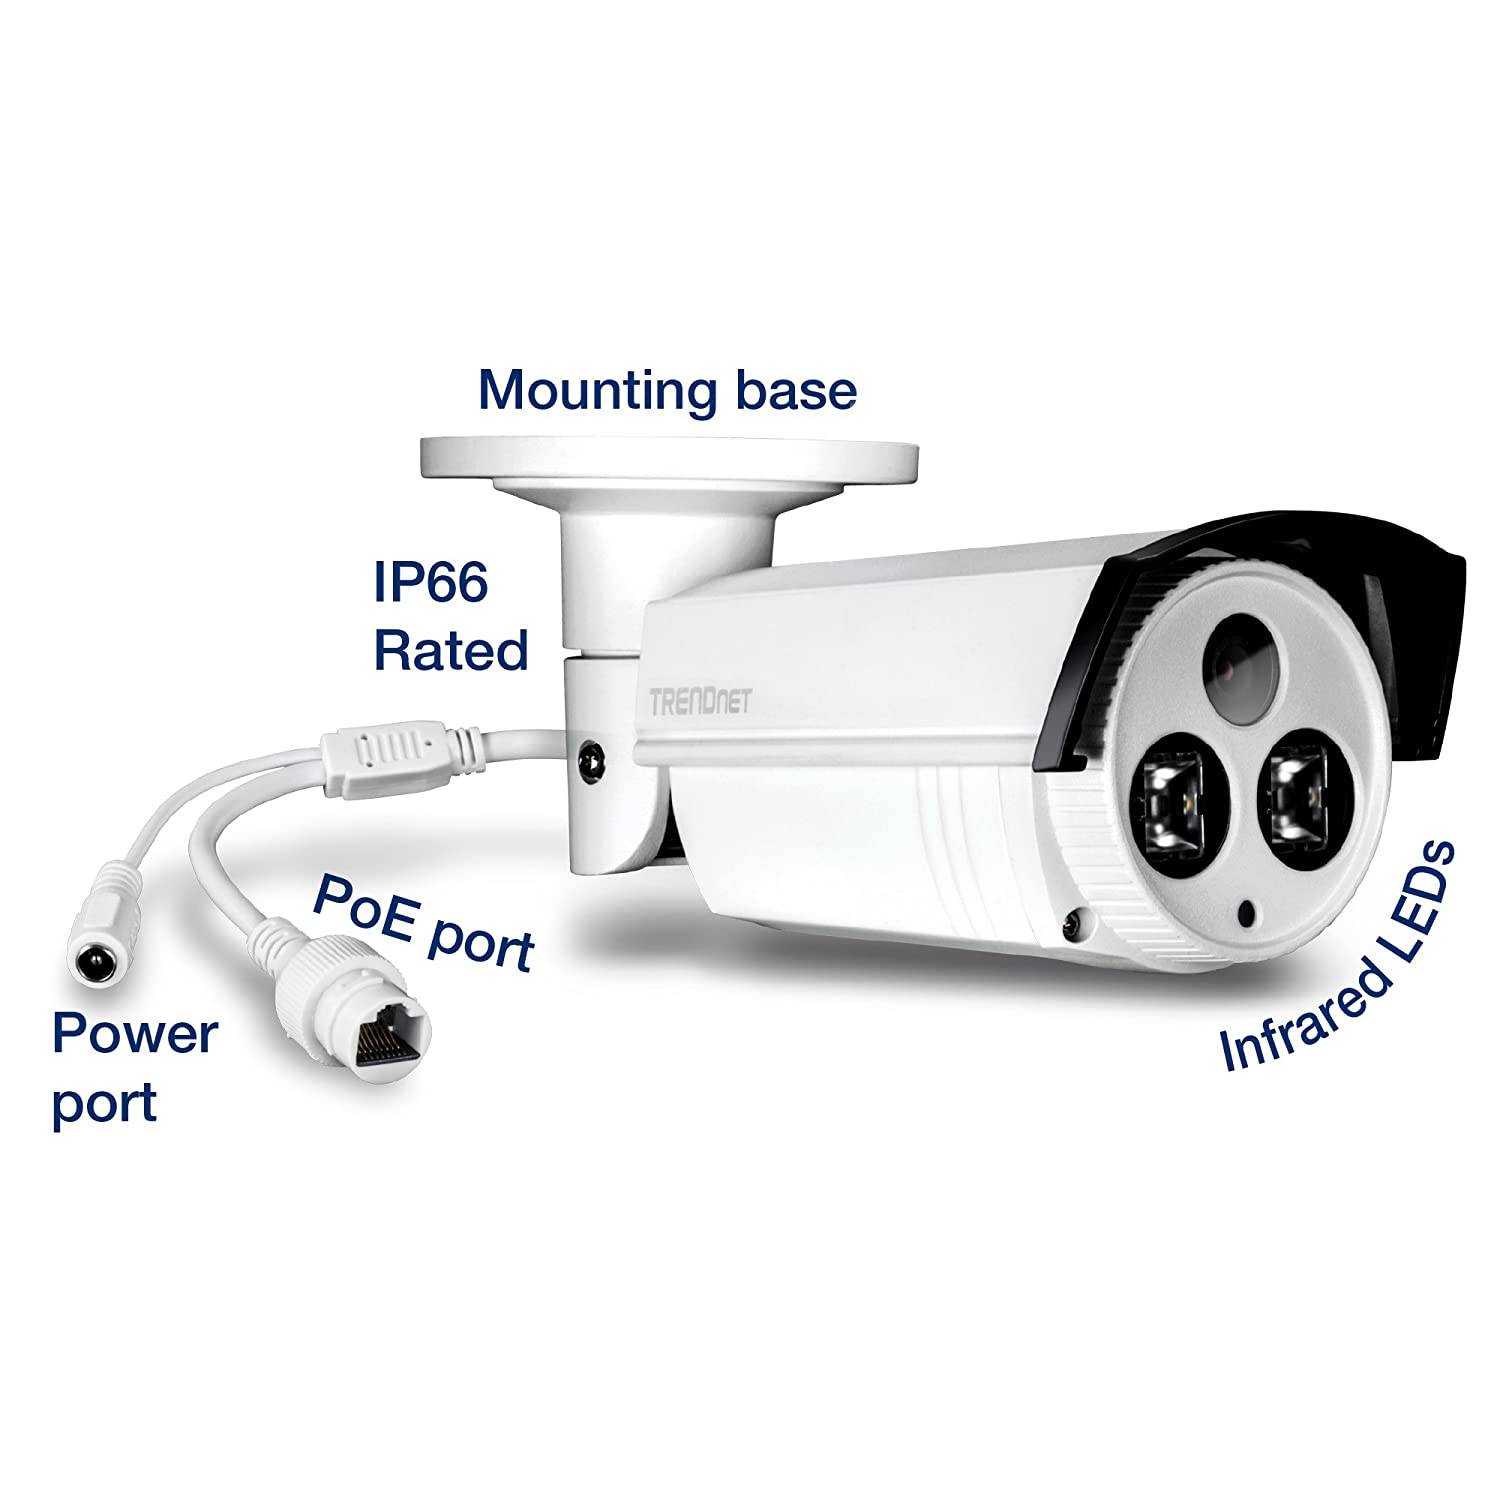 262 Long Range Night Vision up to 80m TRENDnet Indoor//Outdoor 5MP H.265 120dB WDR PoE Network Camera 262/' TV-IP313PI Long Range Night Vision up to 80m IP67 Rated Housing